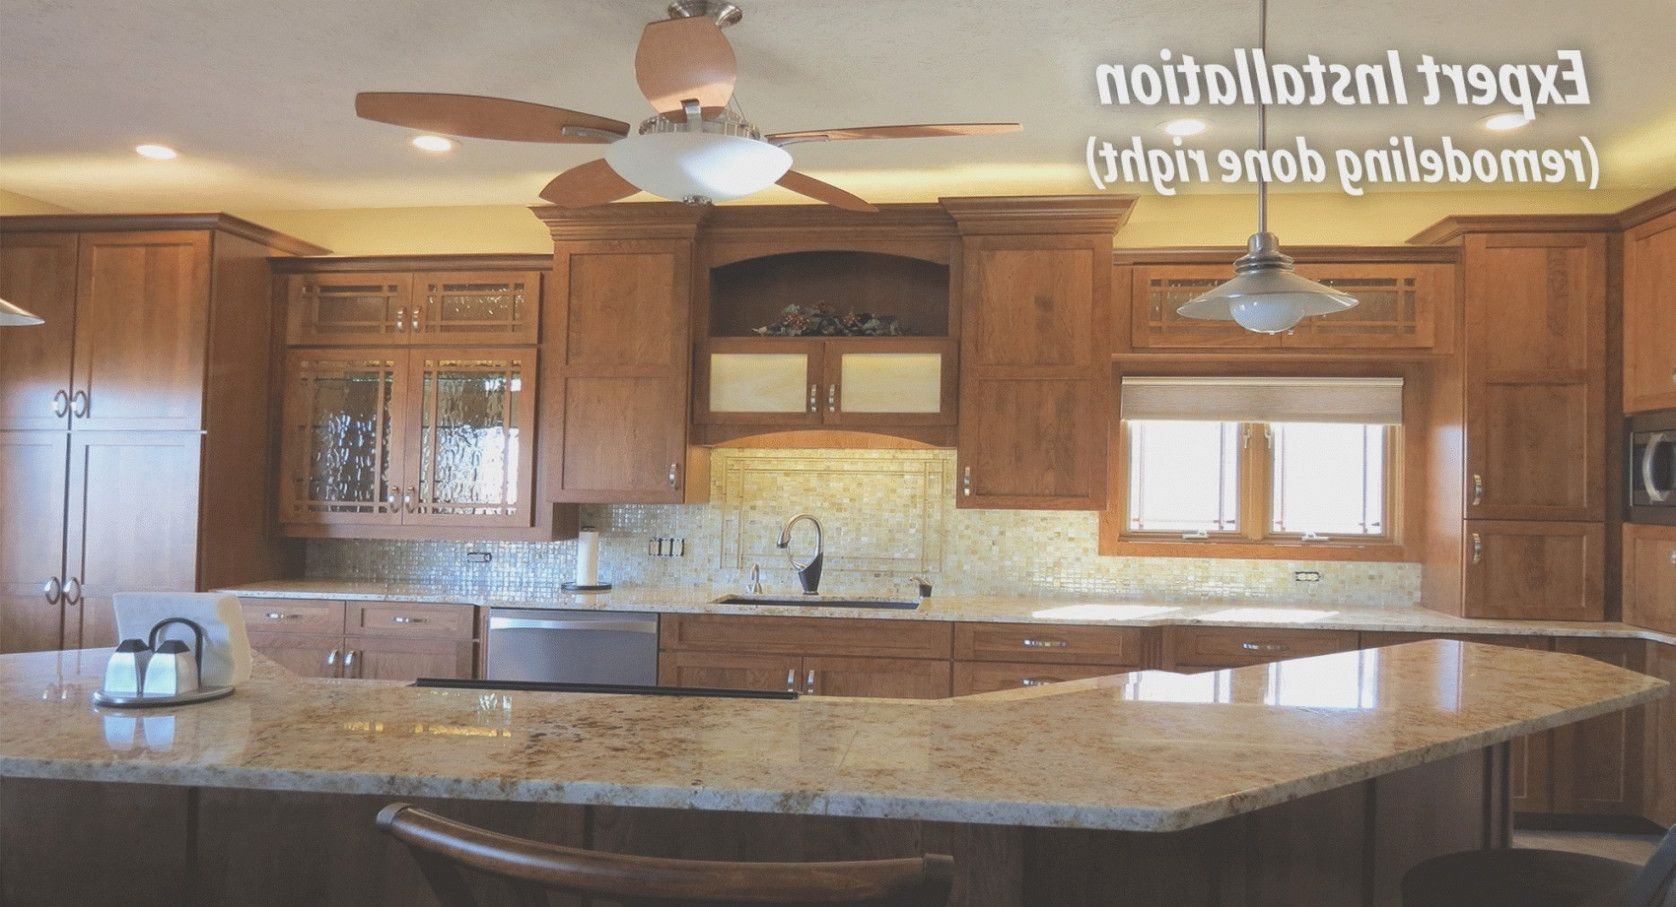 70 Kitchen Cabinets Springfield Mo Kitchen Island Countertop Ideas Check More At Http Www Pl Kitchen Island Countertop Island Countertops Kitchen Cabinets